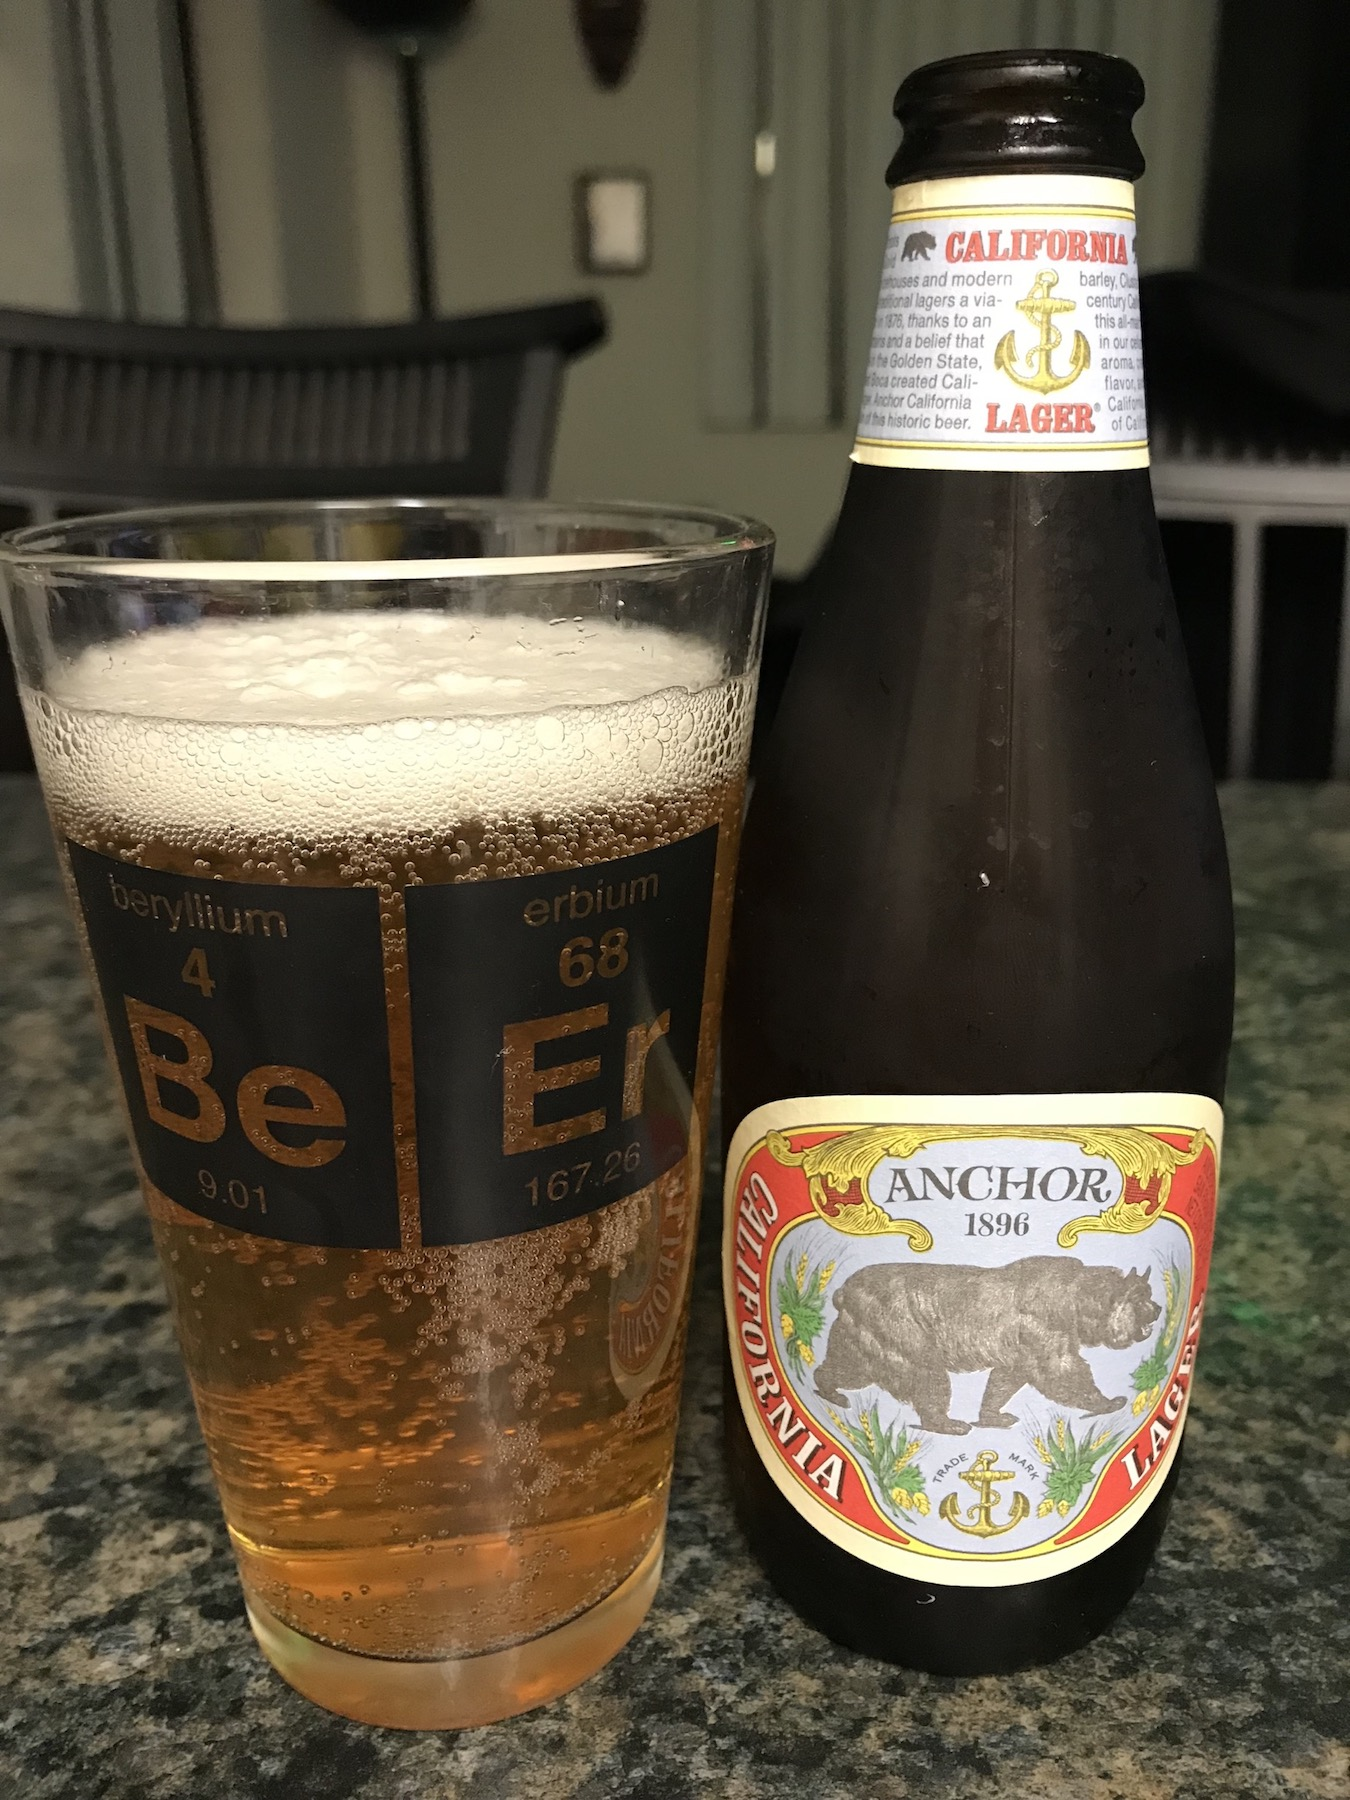 California Lager by Anchor Brewing Company